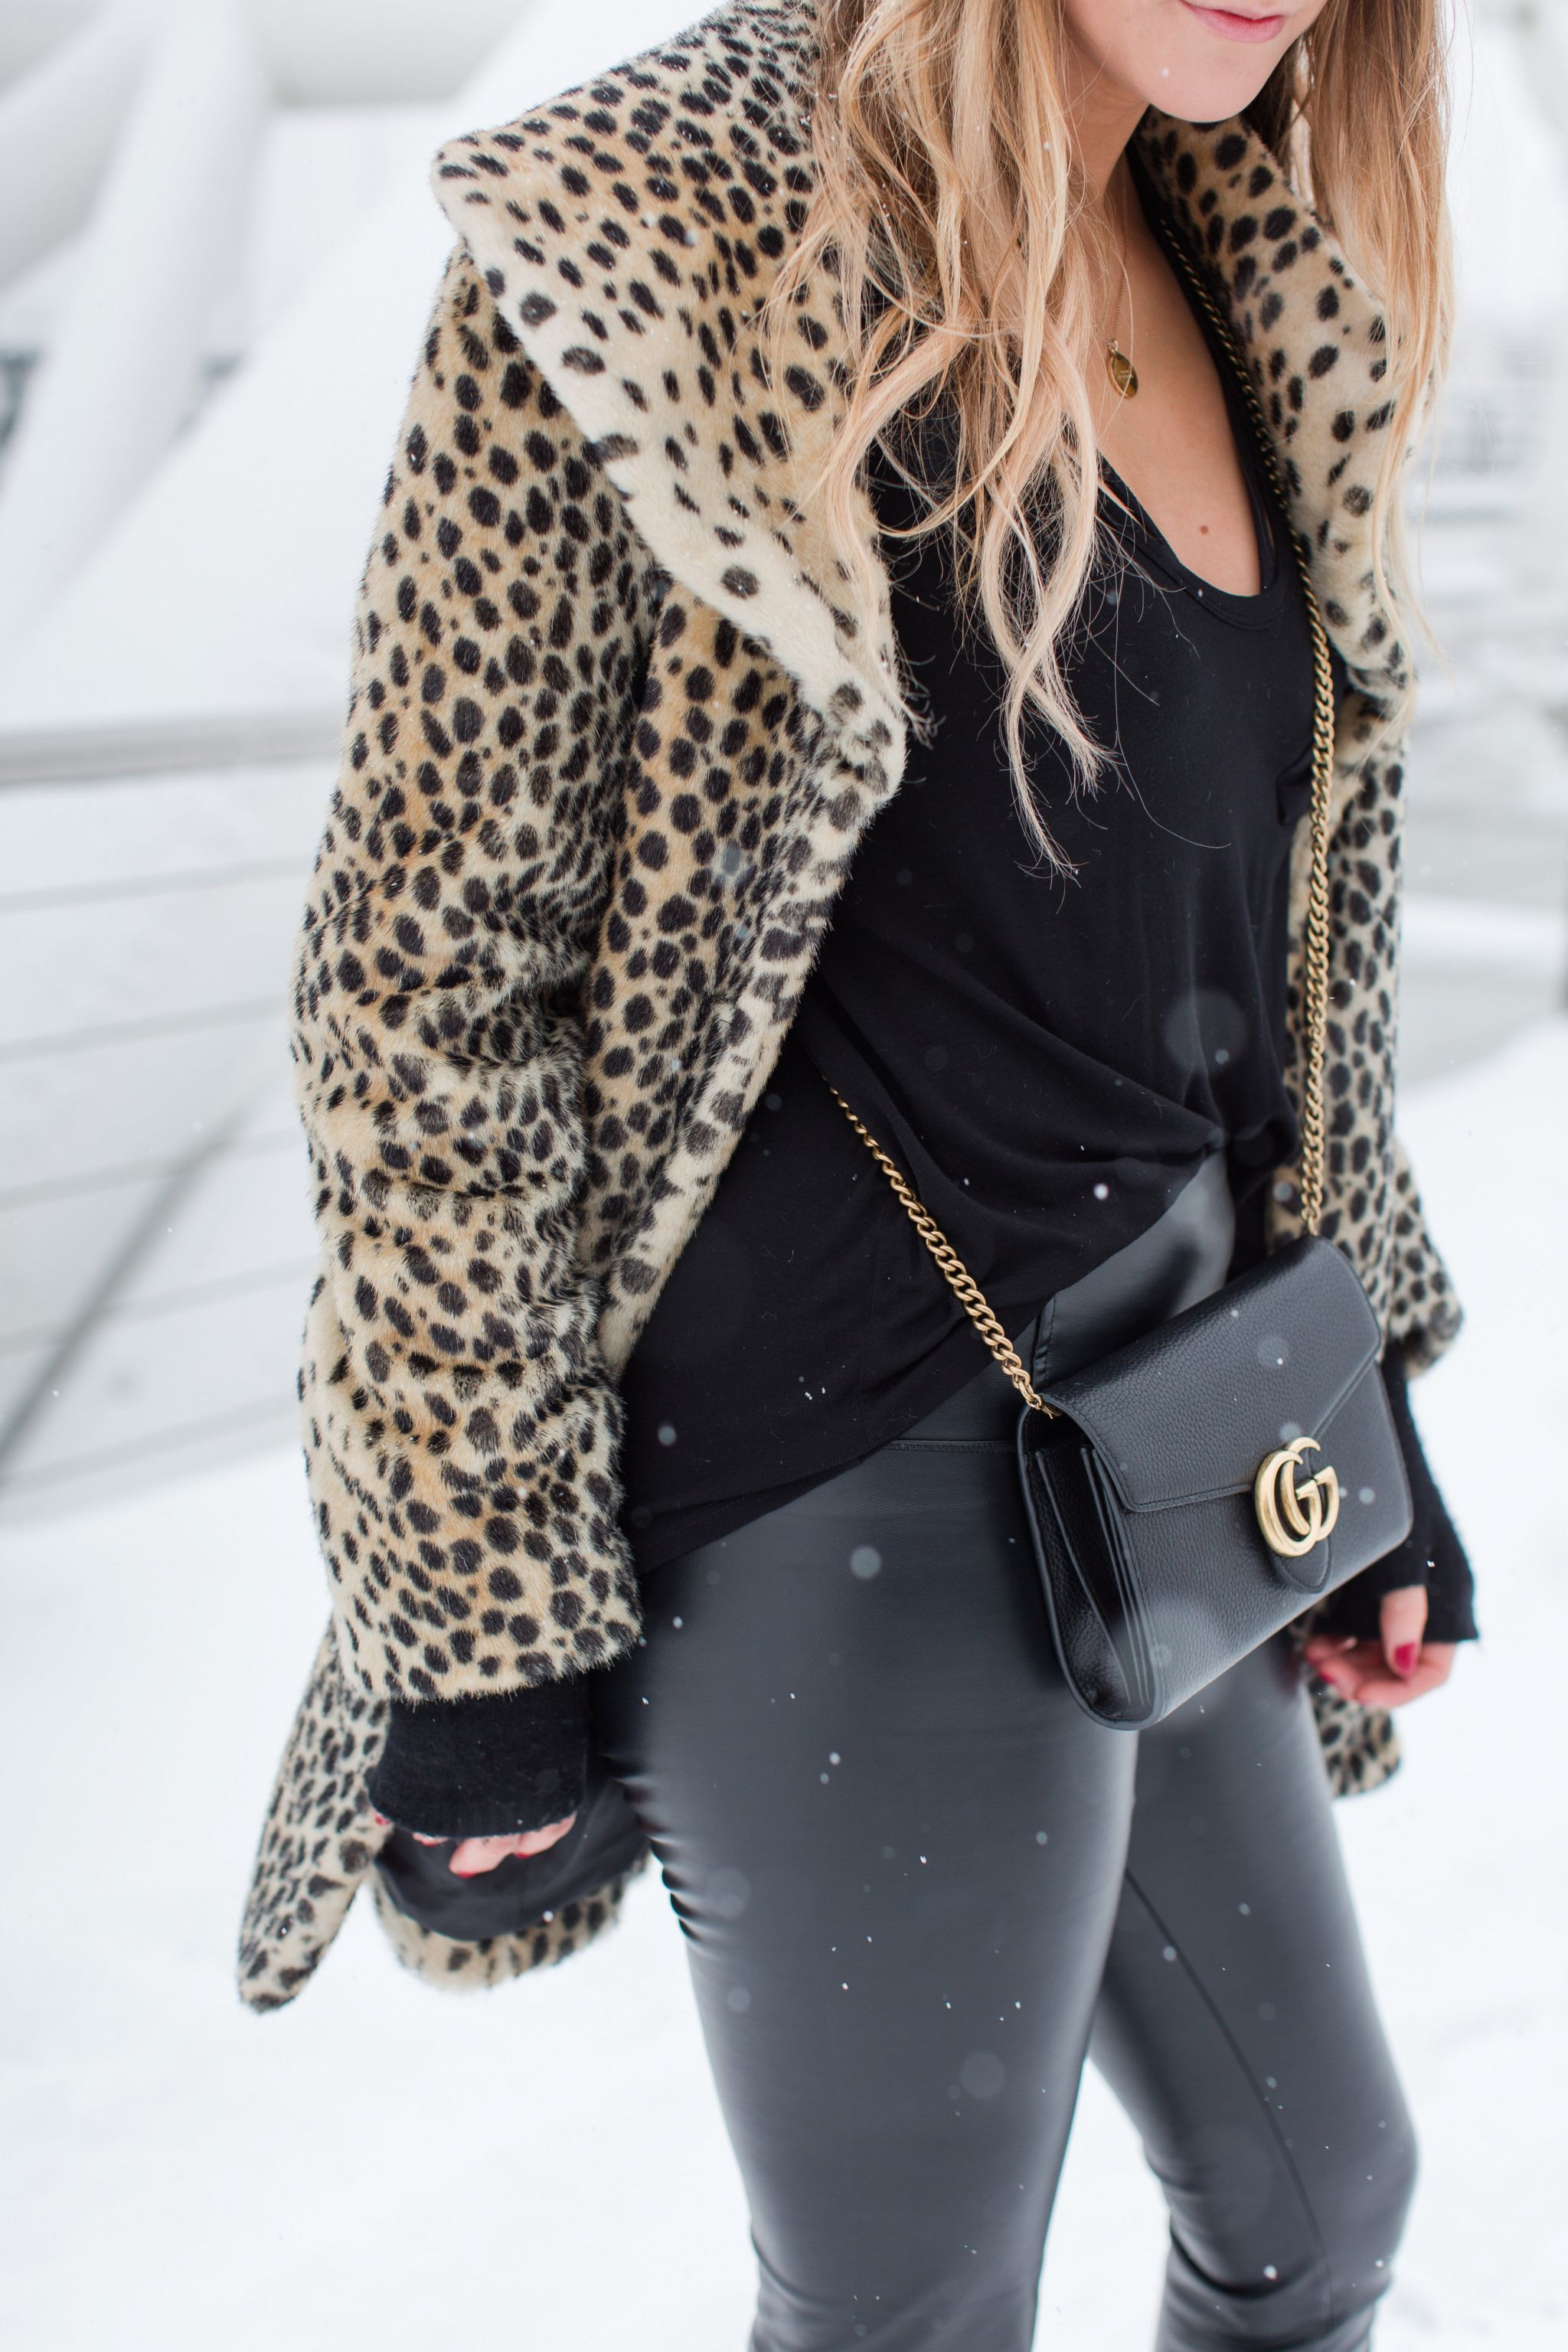 life with aco, leopard coat, winter outfit, snowy outfit